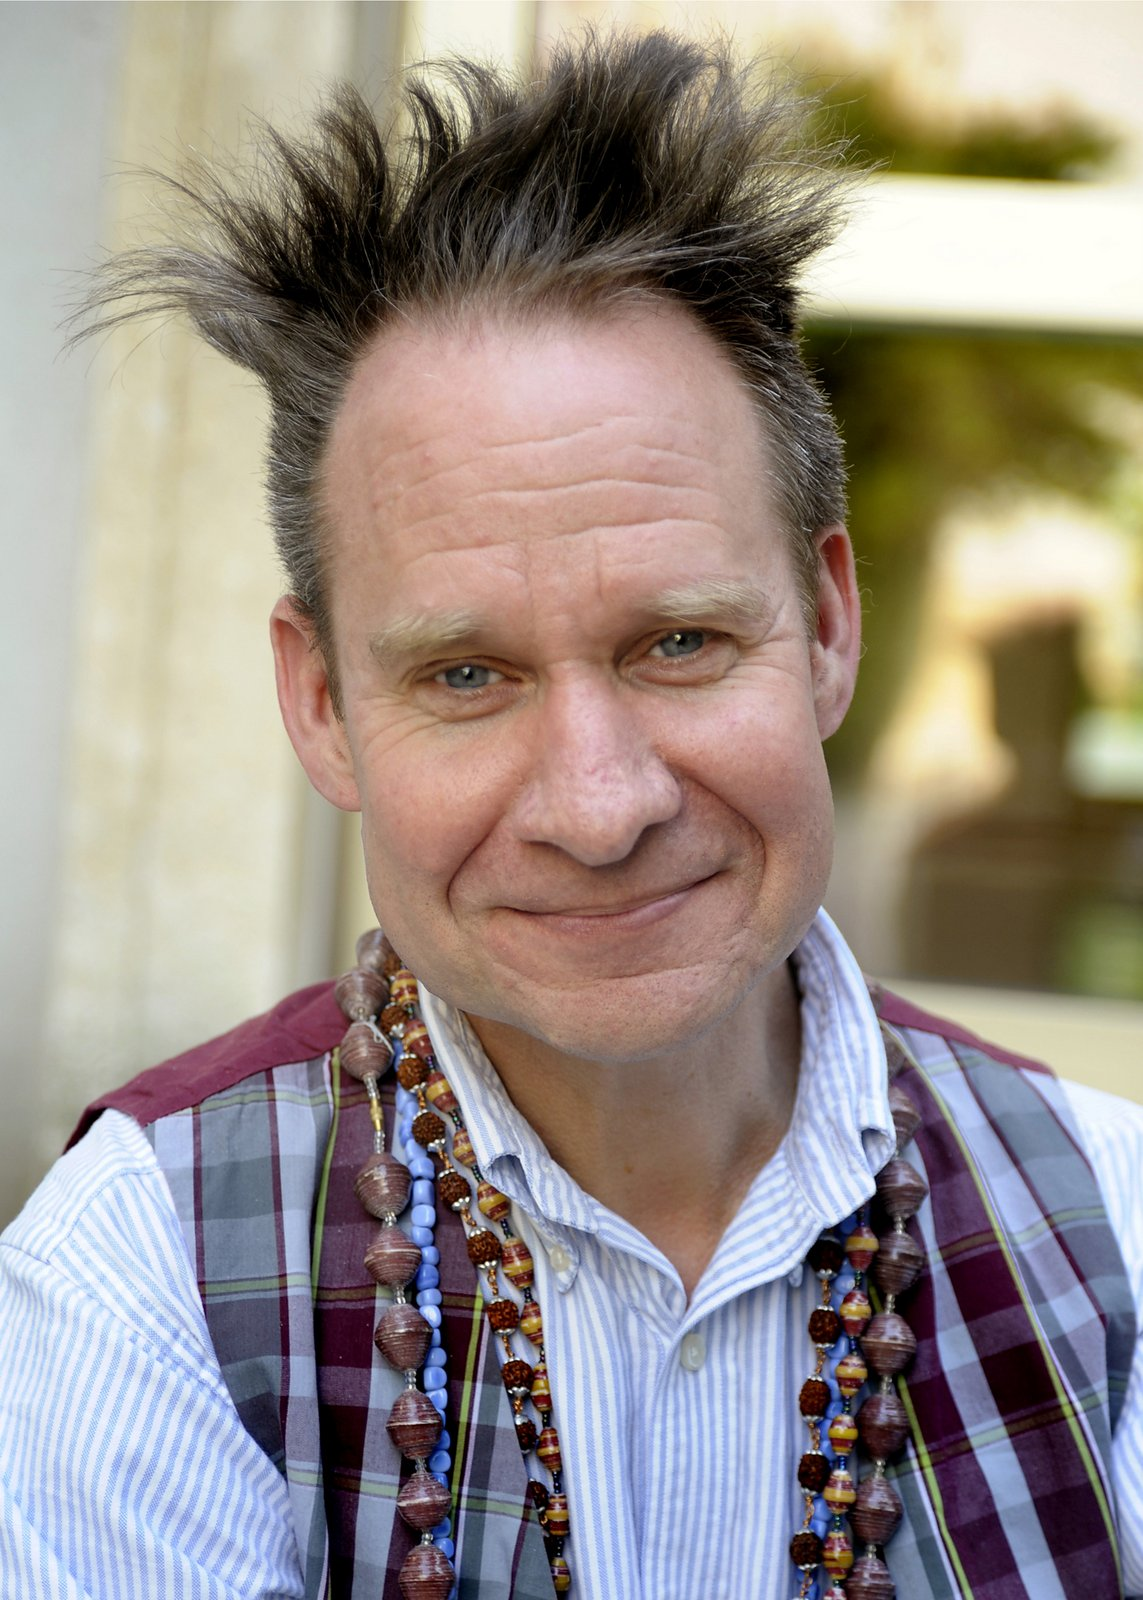 Peter Sellars, director of the Los Angeles Master Chorale's production of Lagrime; PHOTO CREDIT: Ruth Walz